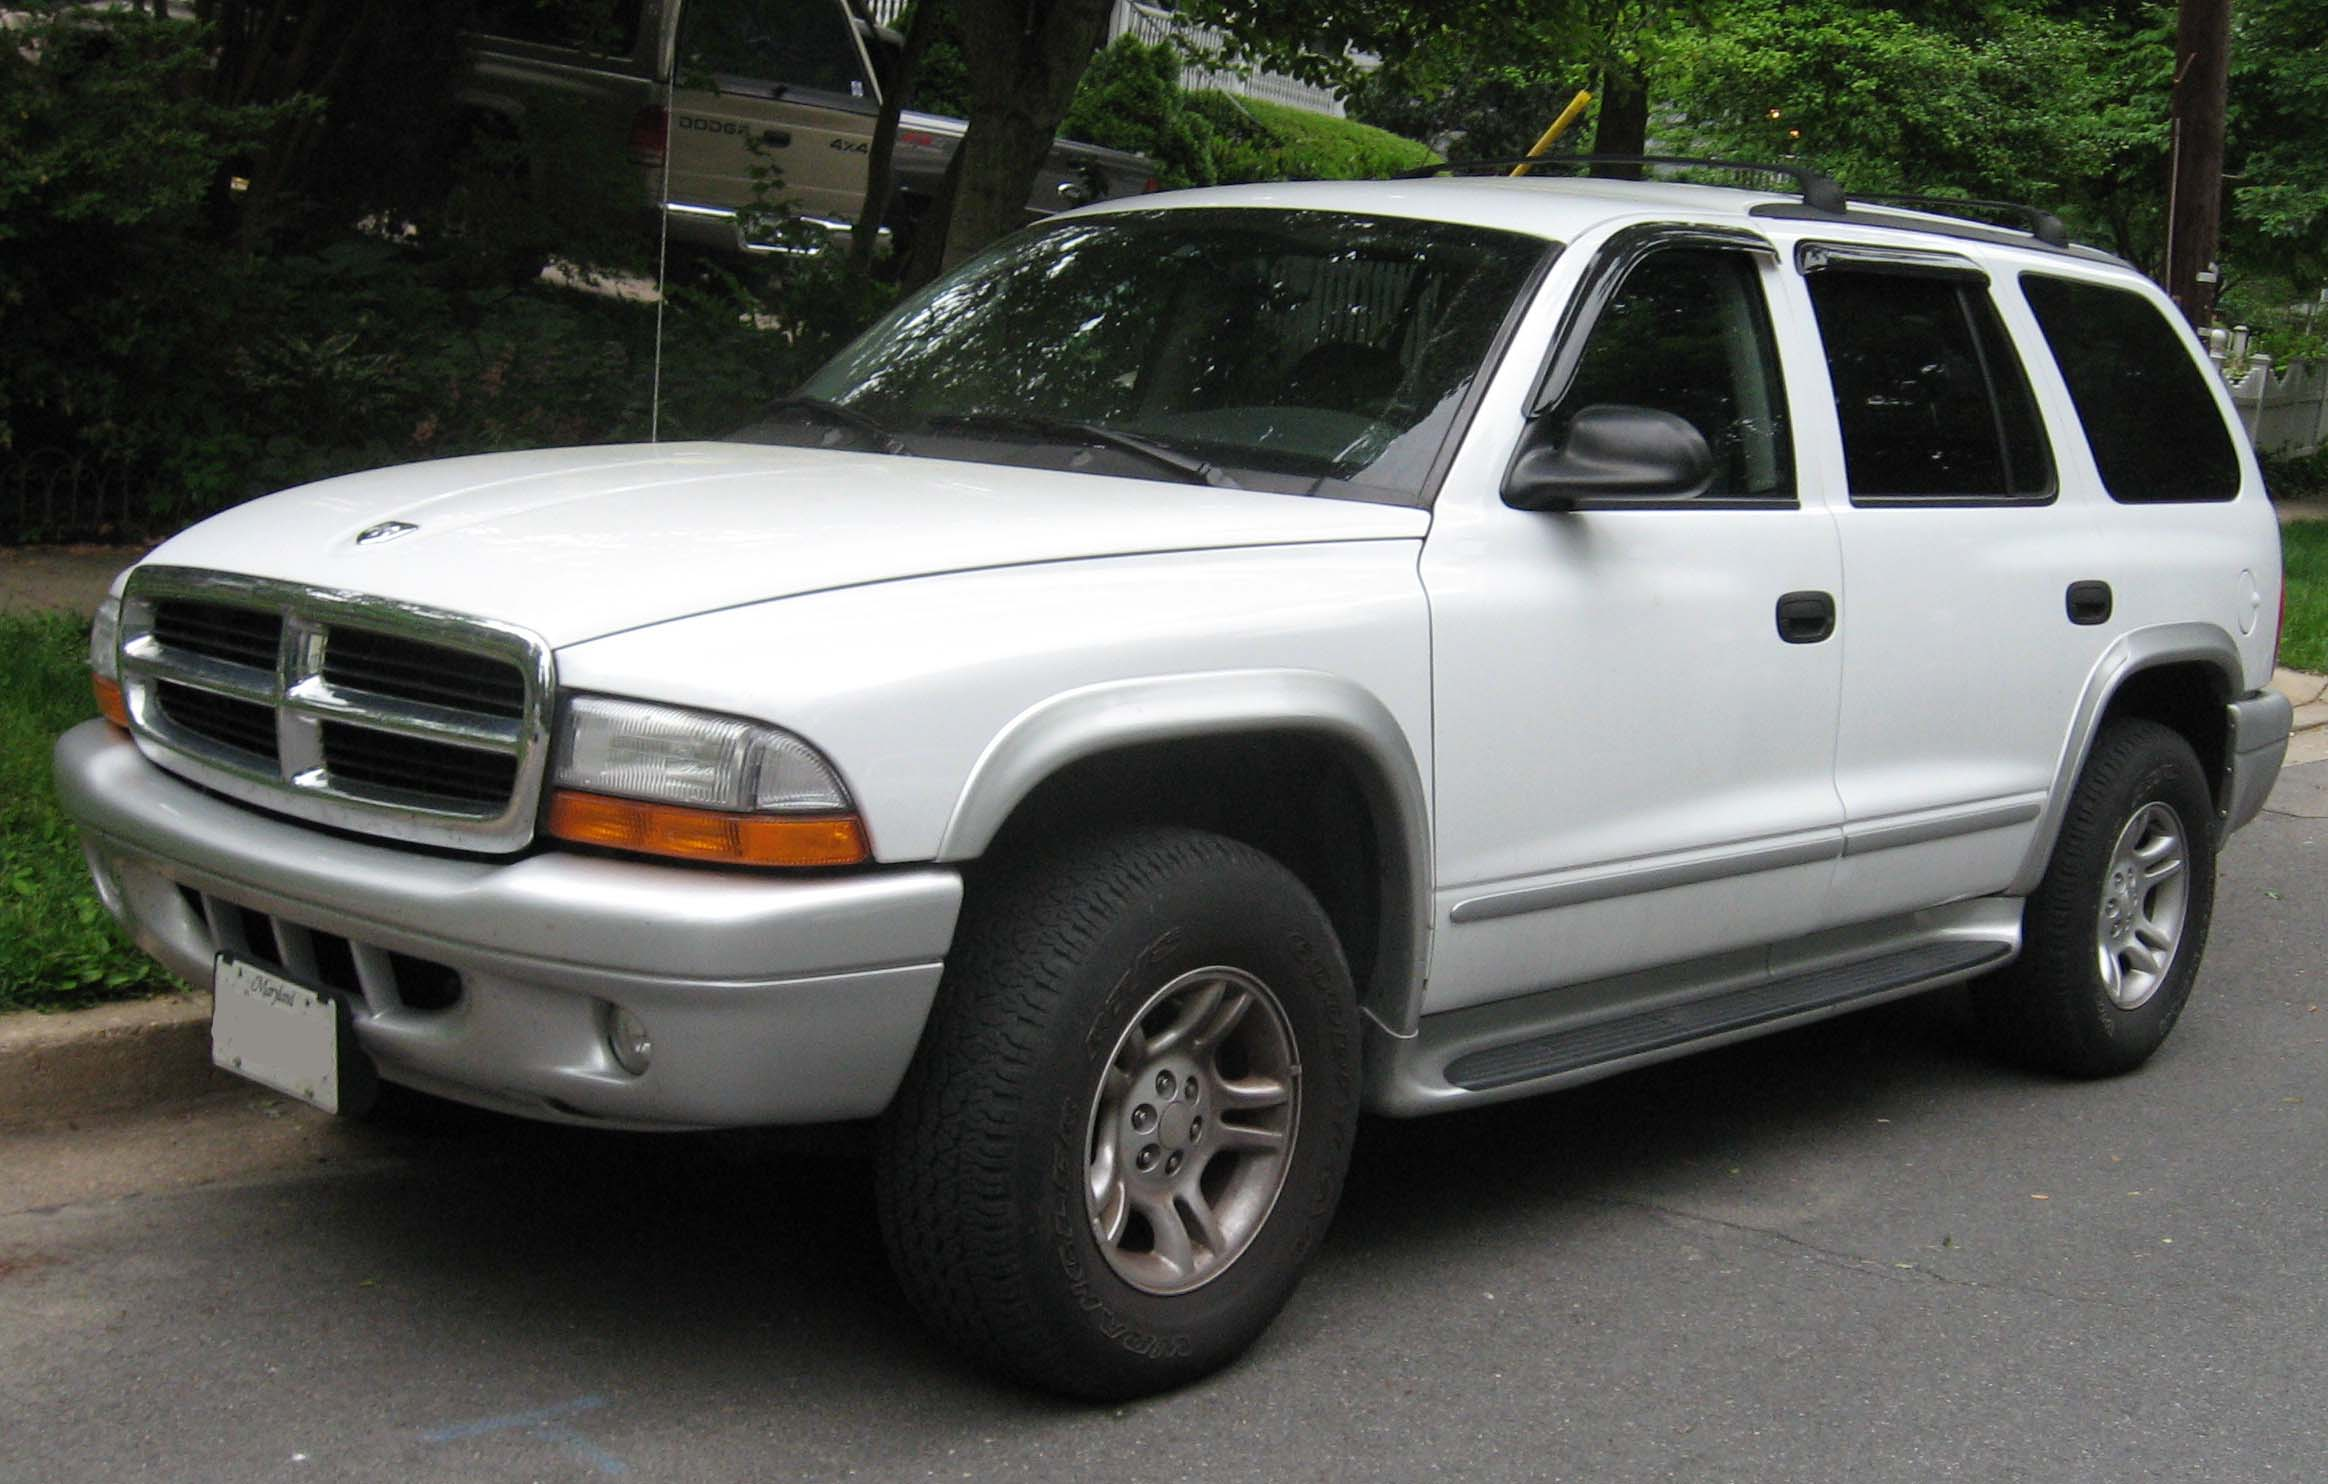 File:98-03 Dodge Durango.jpg